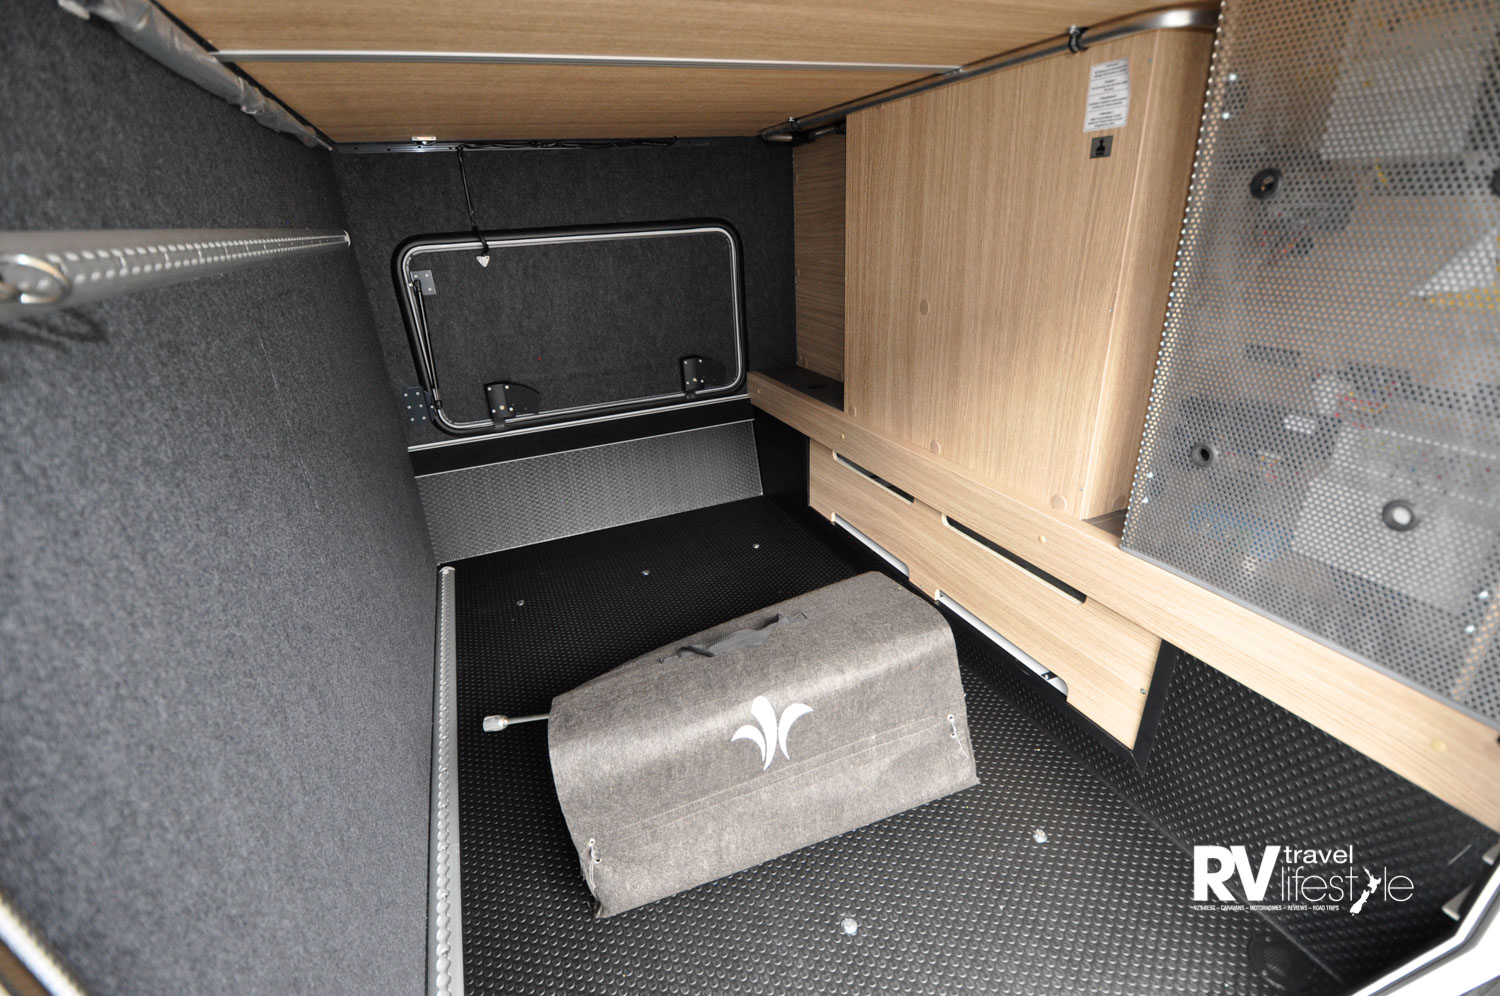 The rear boot storage is accessible both sides, the floor is coated with highly wear-resistant dimpled membrane, has lighting, is heatable, and has four adjustable eyelets in each rail for tie downs. Size length 2175 x 1400mm width, 1255mm height